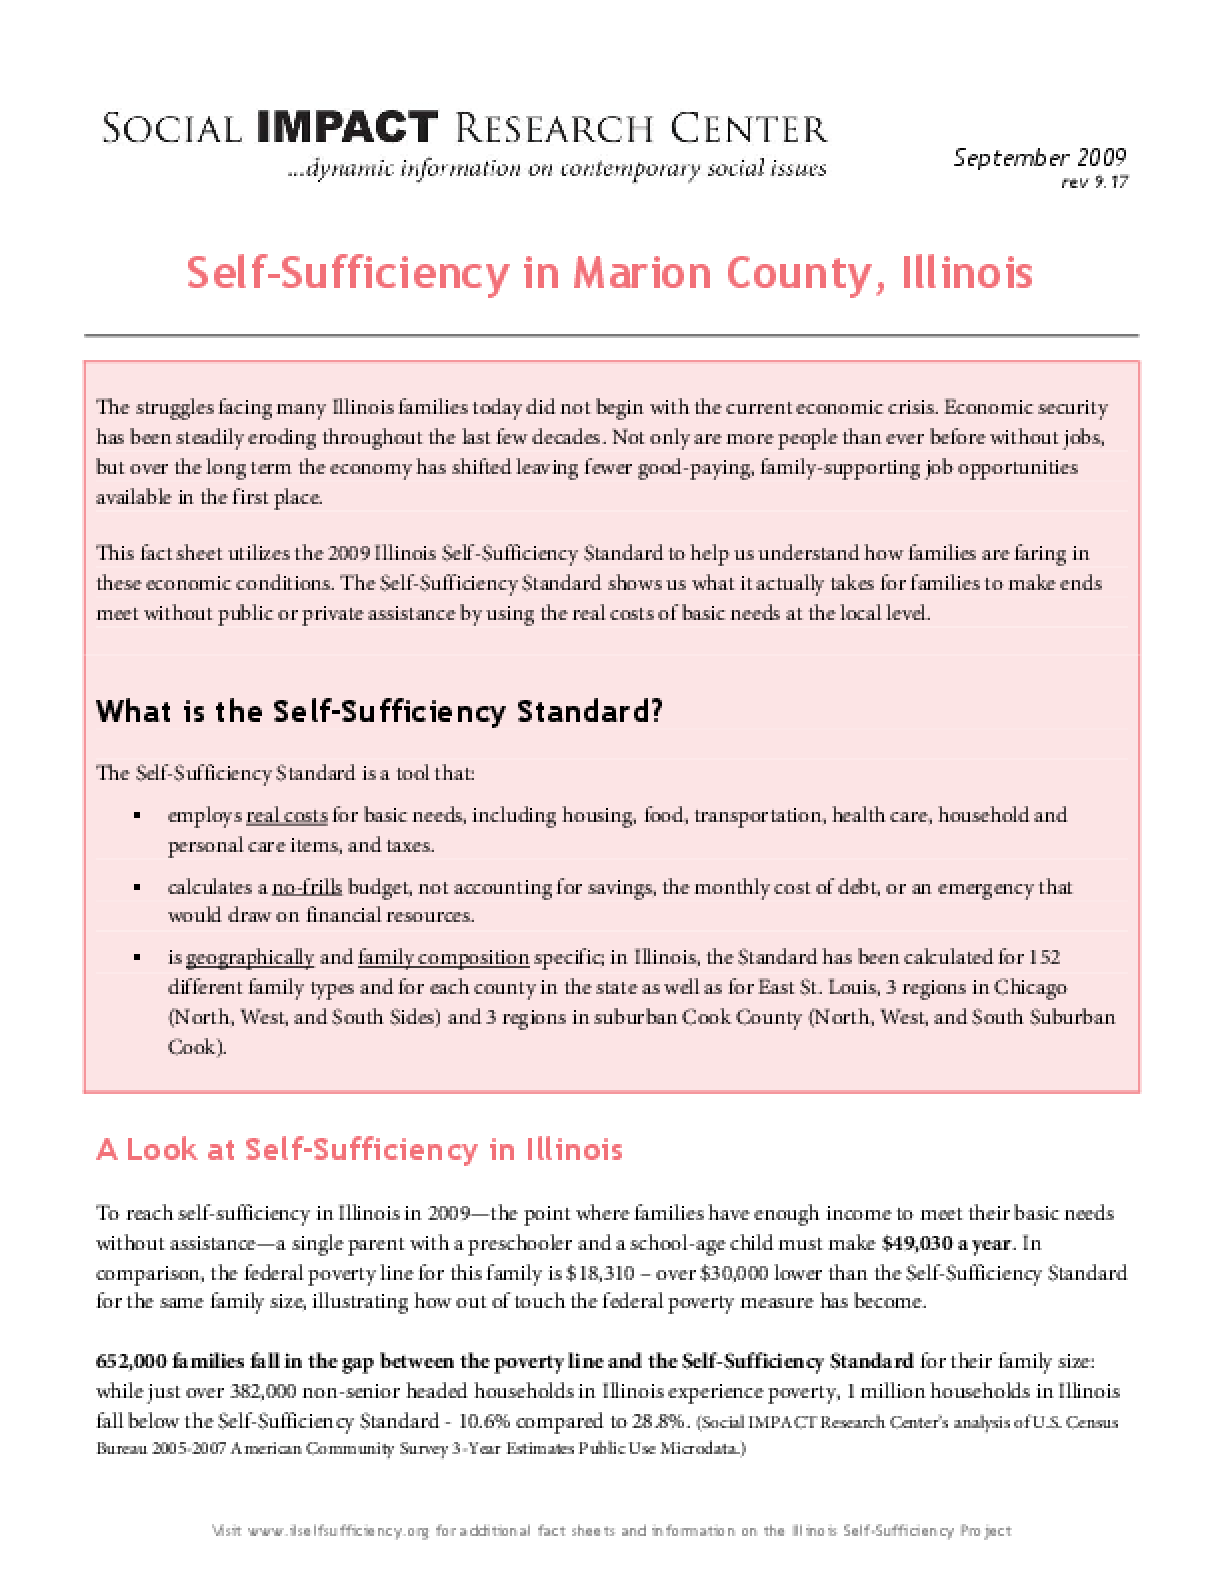 Self-Sufficiency in Marion County, Illinois